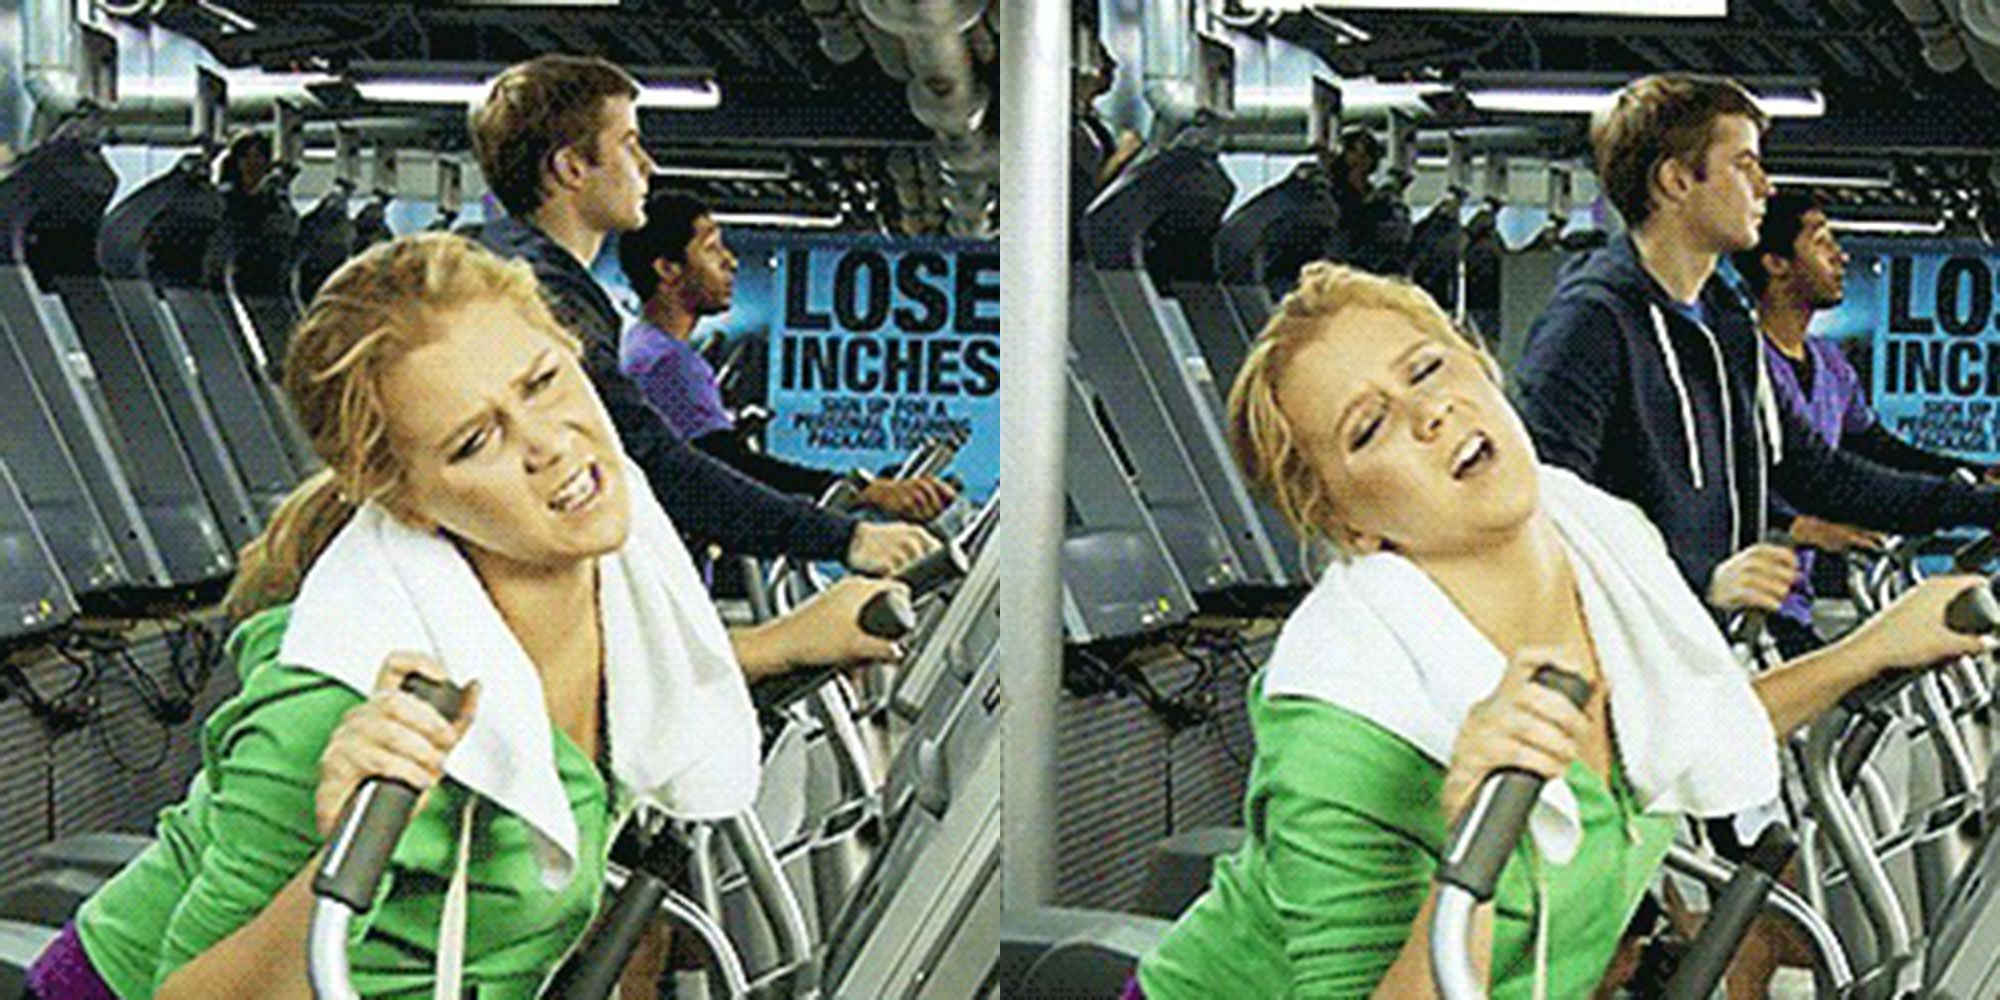 Amy Schumer, gym, exercise, pain, tired, lazy, injury